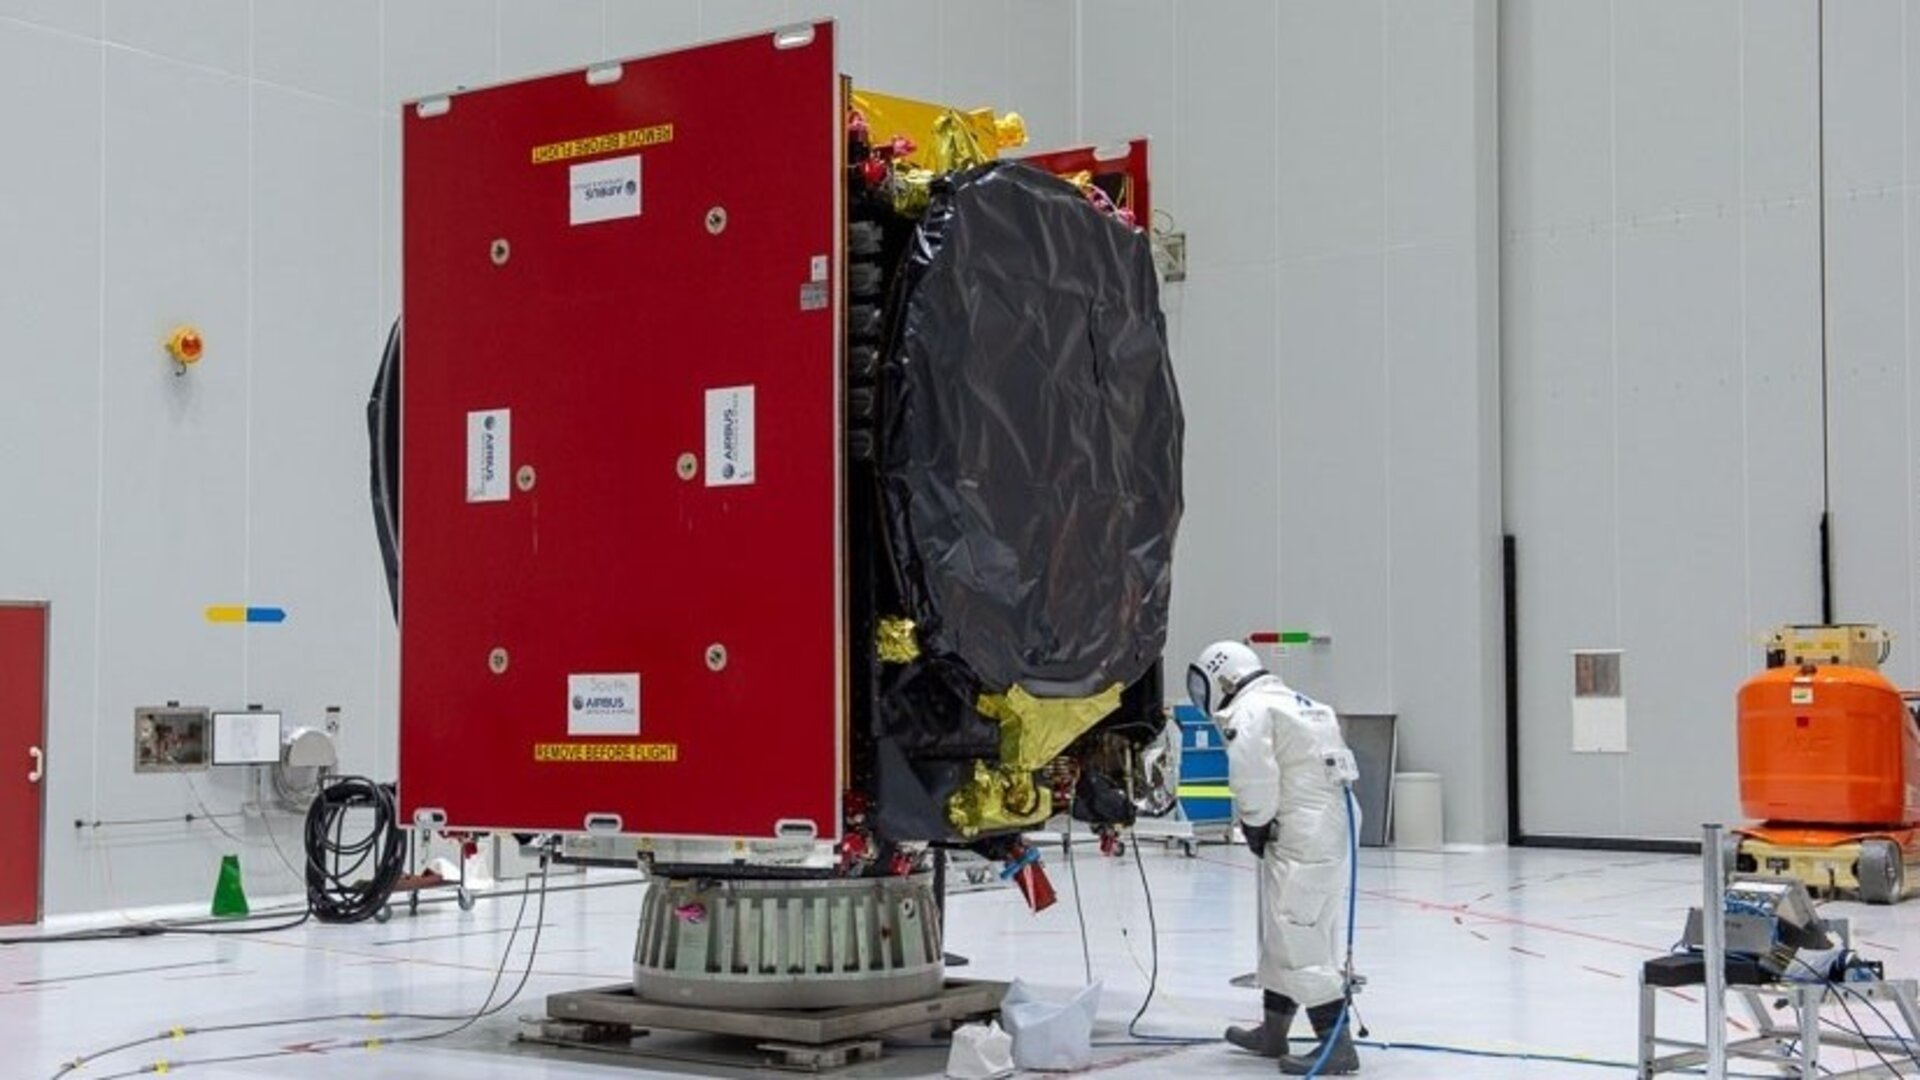 The EDRS-C satellite has been fuelled ahead of its launch